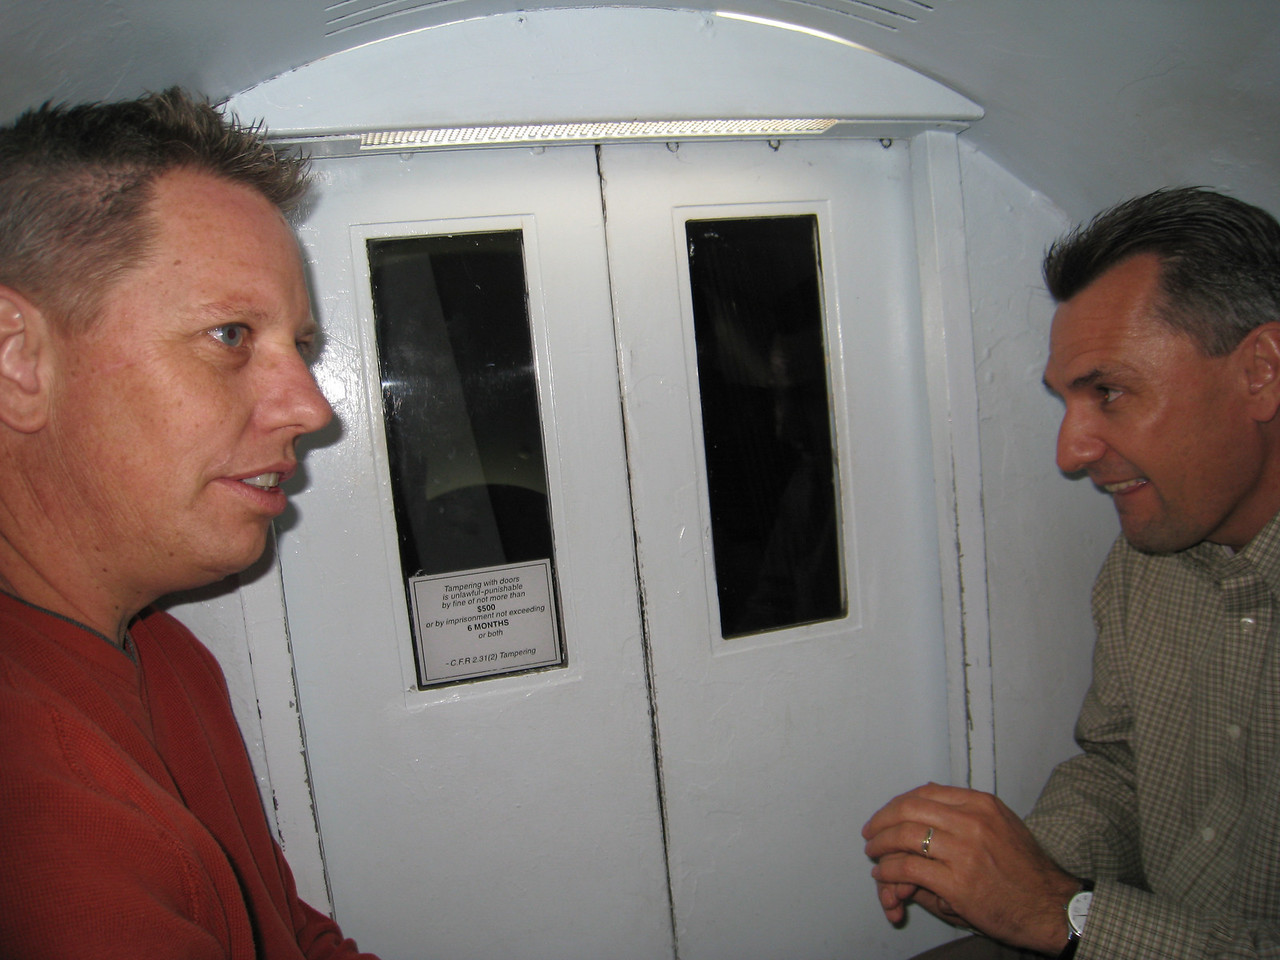 Rob Stewart and David Soeder in tram car that goes up to top of the arch